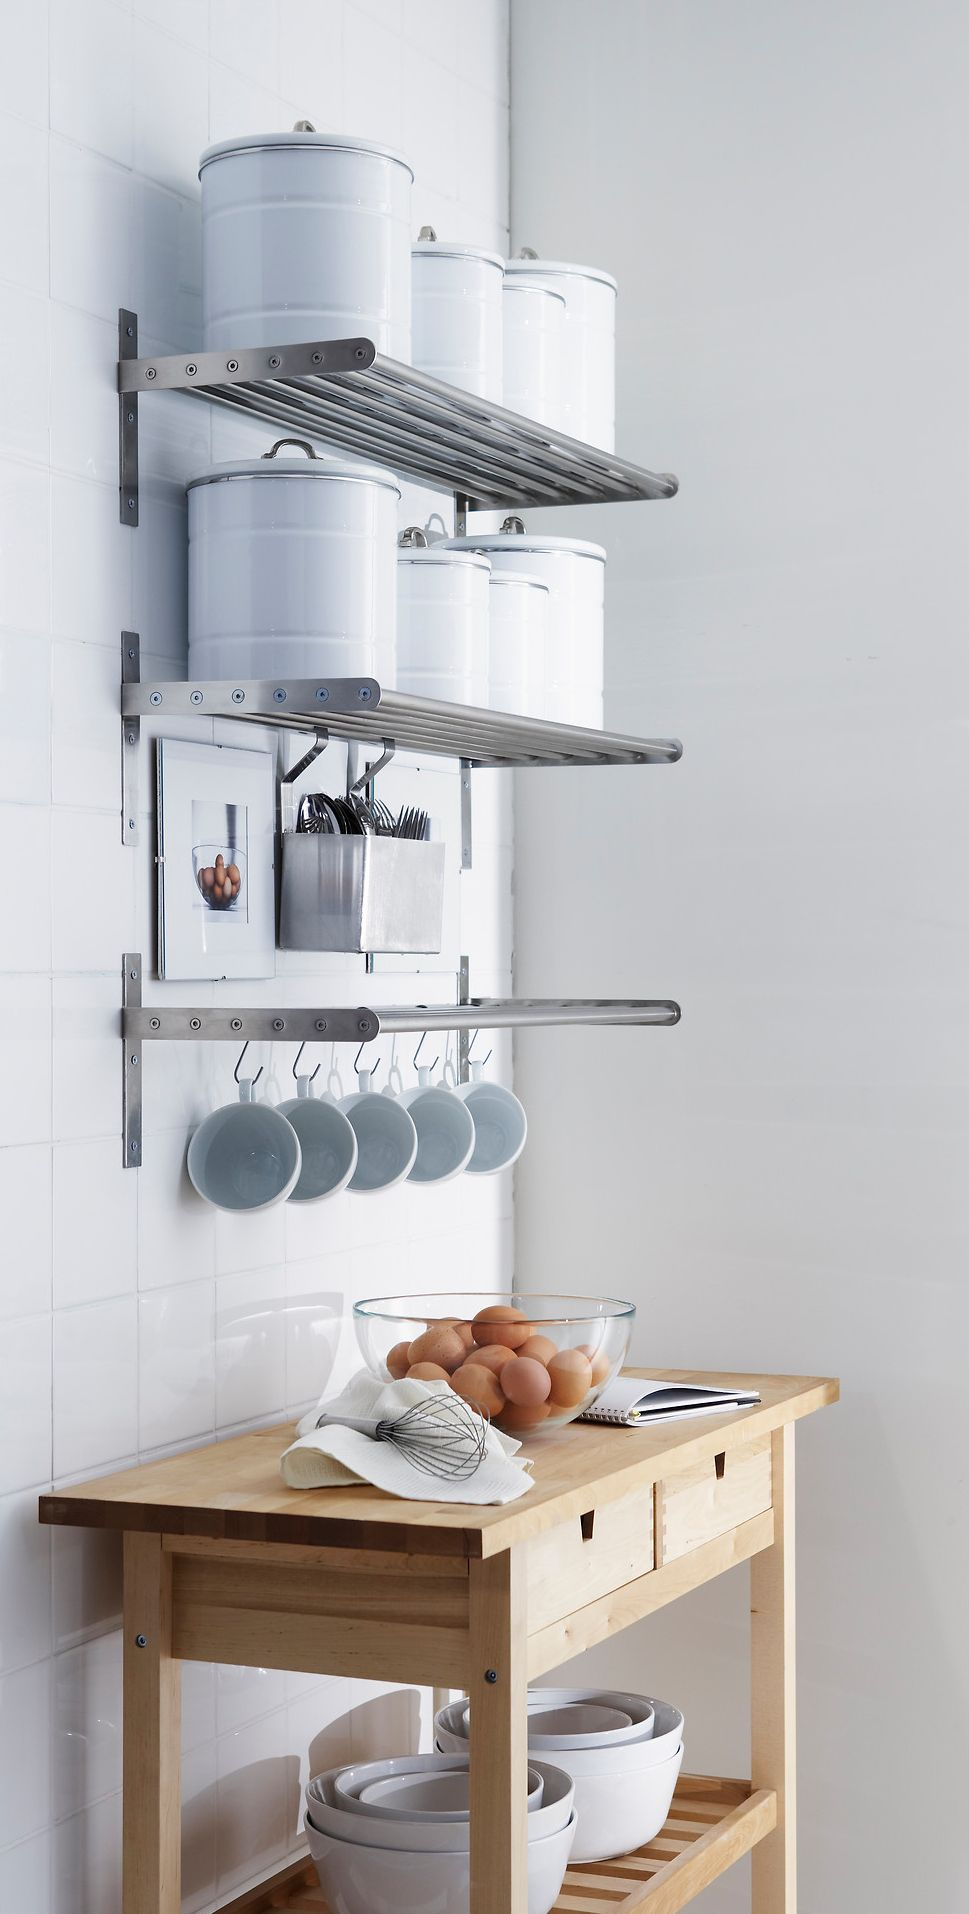 kitchen utensil rack how to build a island with cabinets 65 ingenious organization tips and storage ideas wall